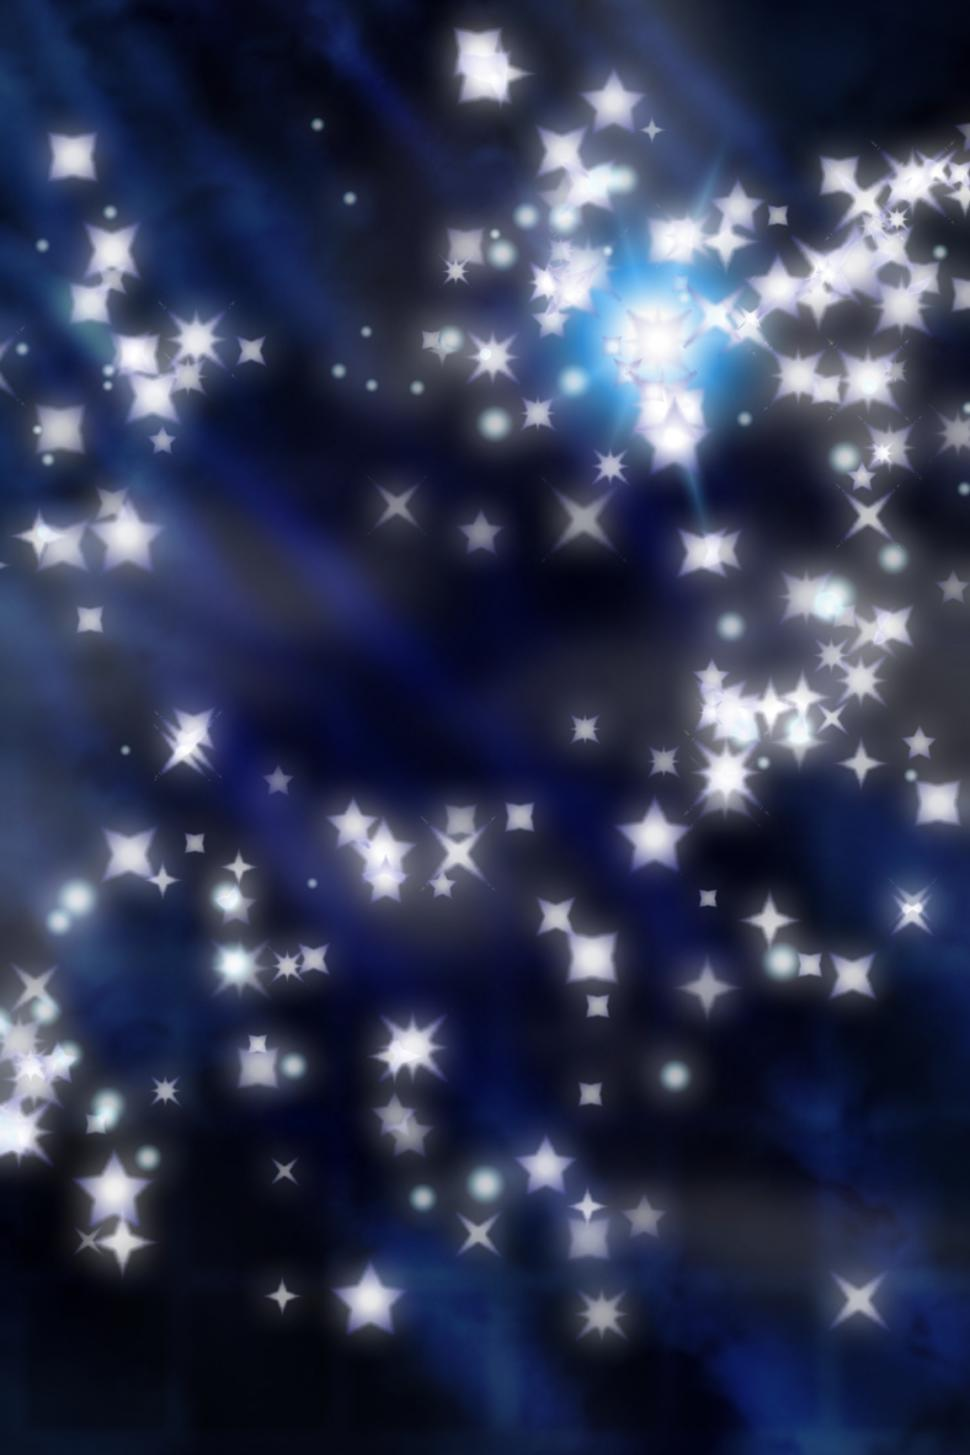 Download Free Stock HD Photo of Fantasy Backgrounds - Stars 2 Online